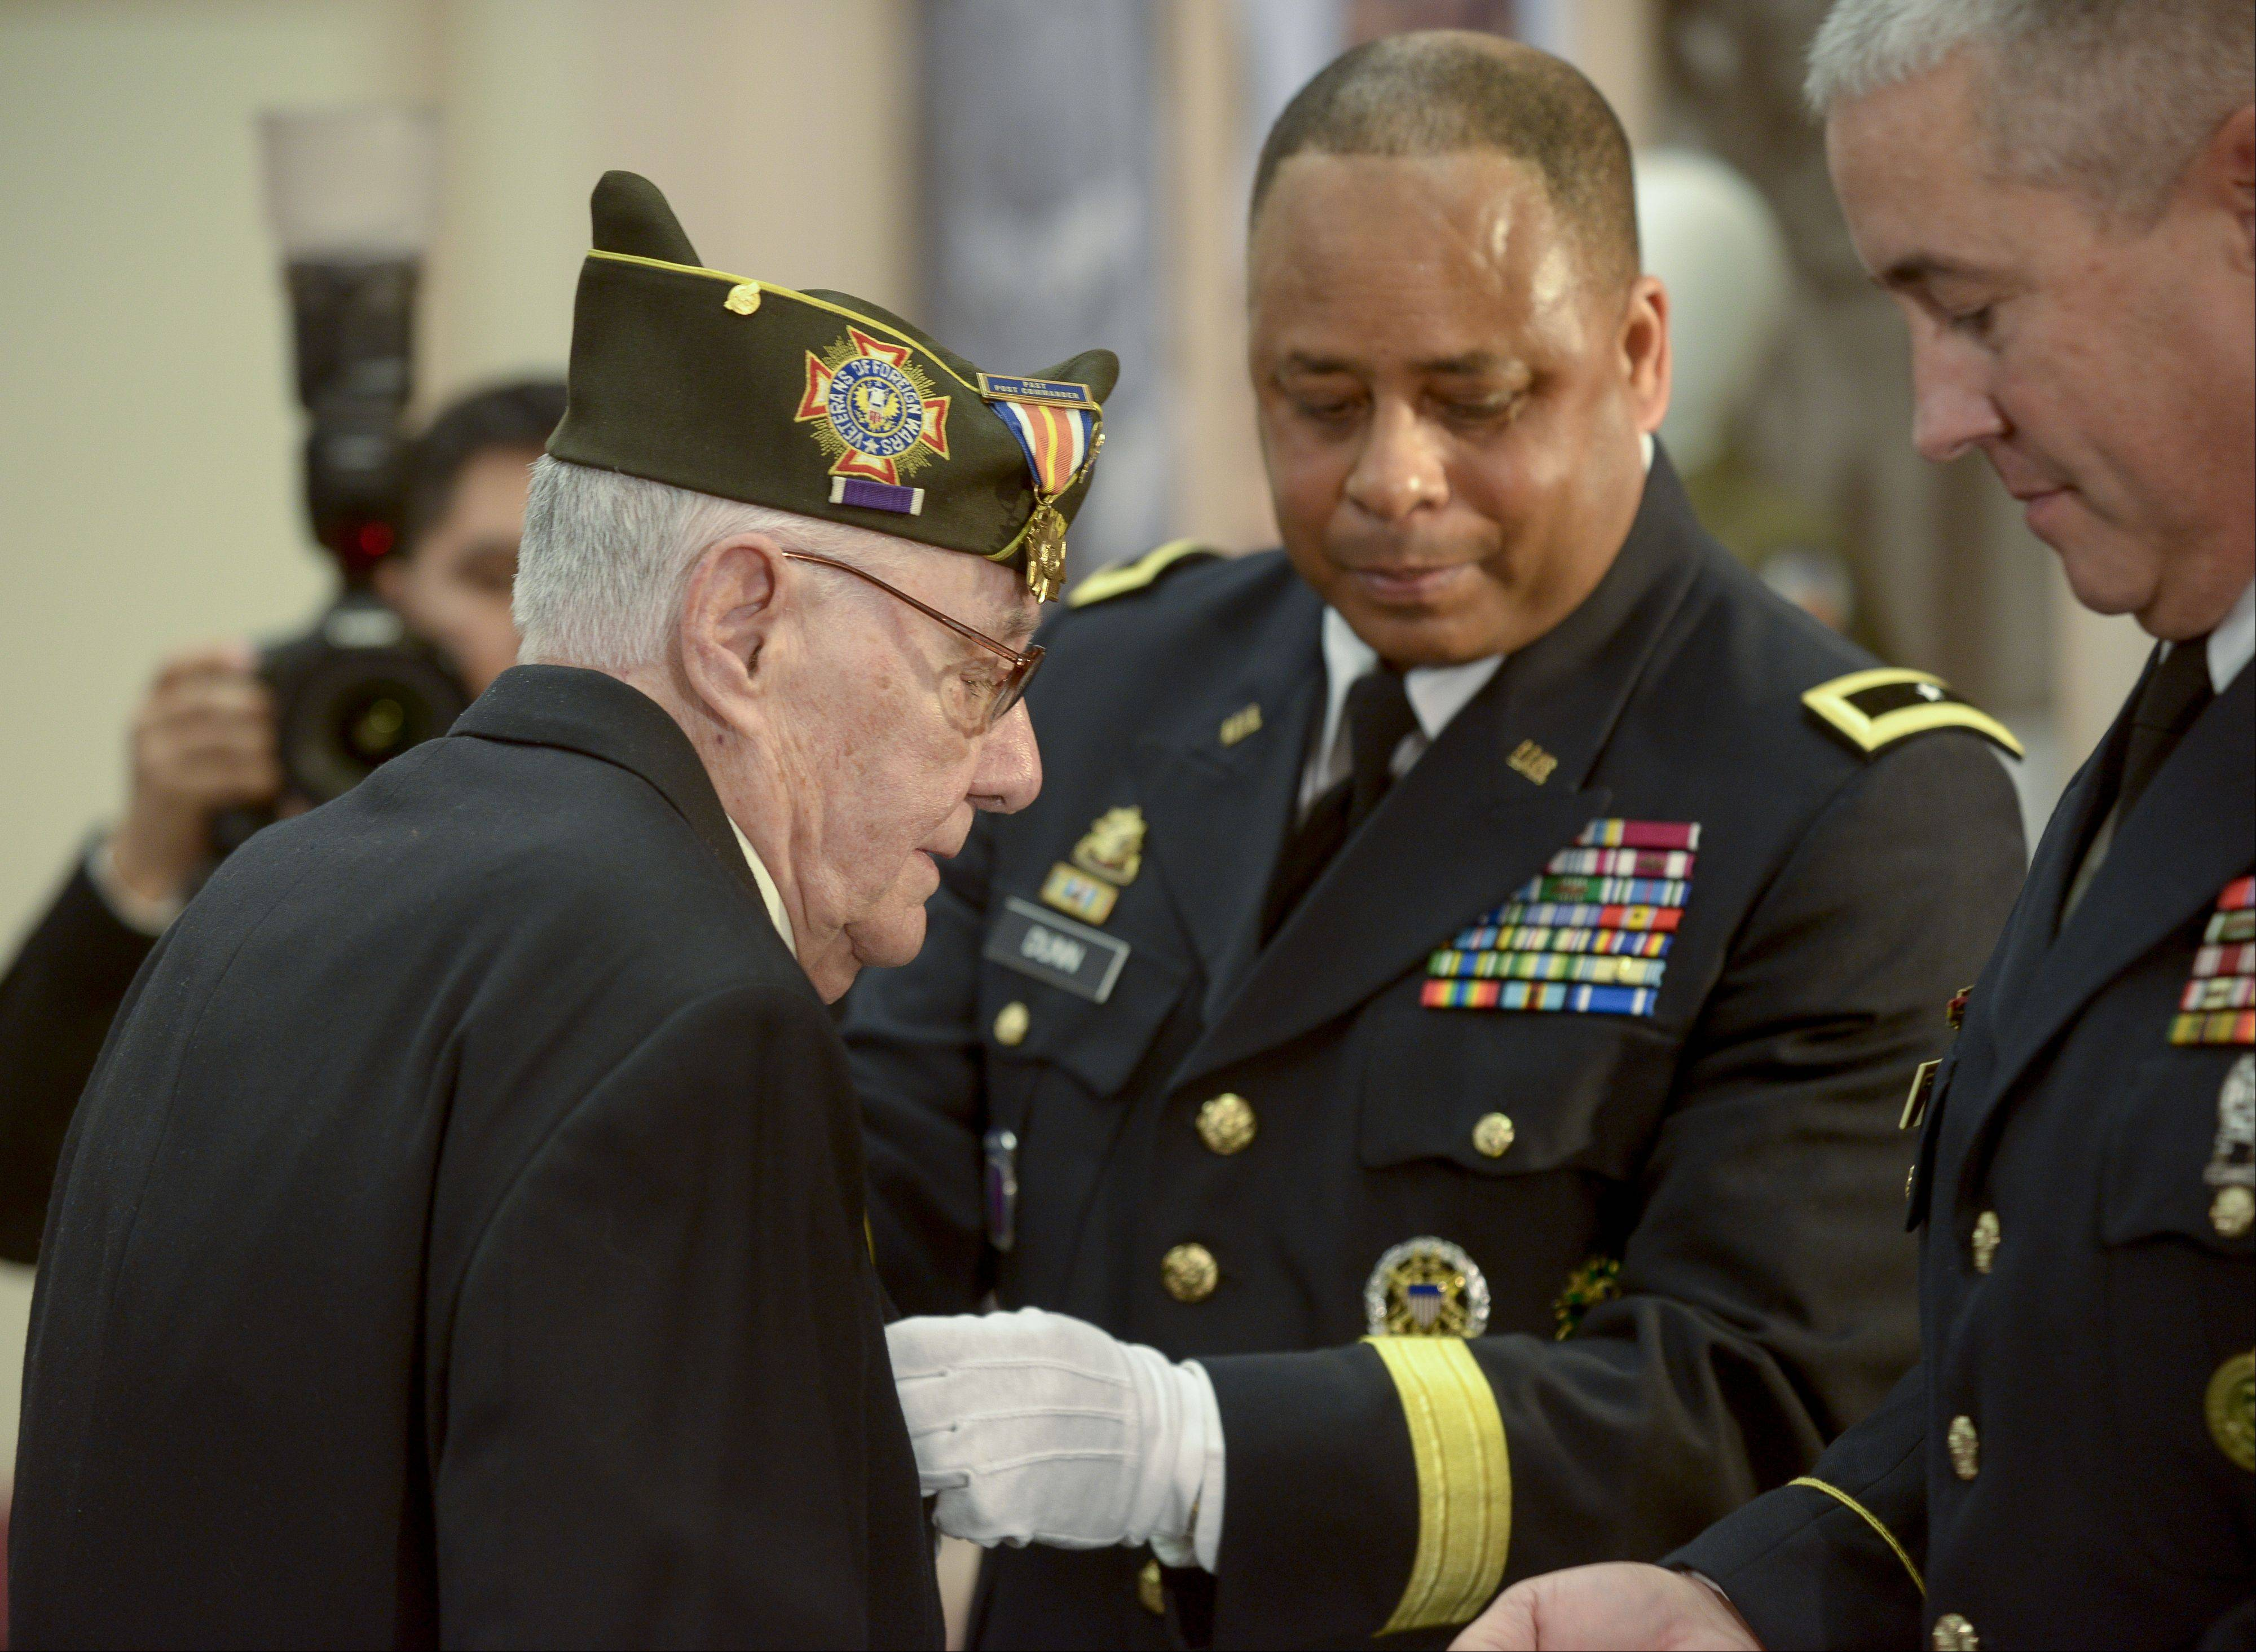 Brigadier General Gracus K. Dunn awards Frank Andrews of Des Plaines the six medals he earned during his service with the U.S. Army in World War II. The medals included a Purple Heart. Andrews was injured on D-Day and in the Battle of the Bulge.